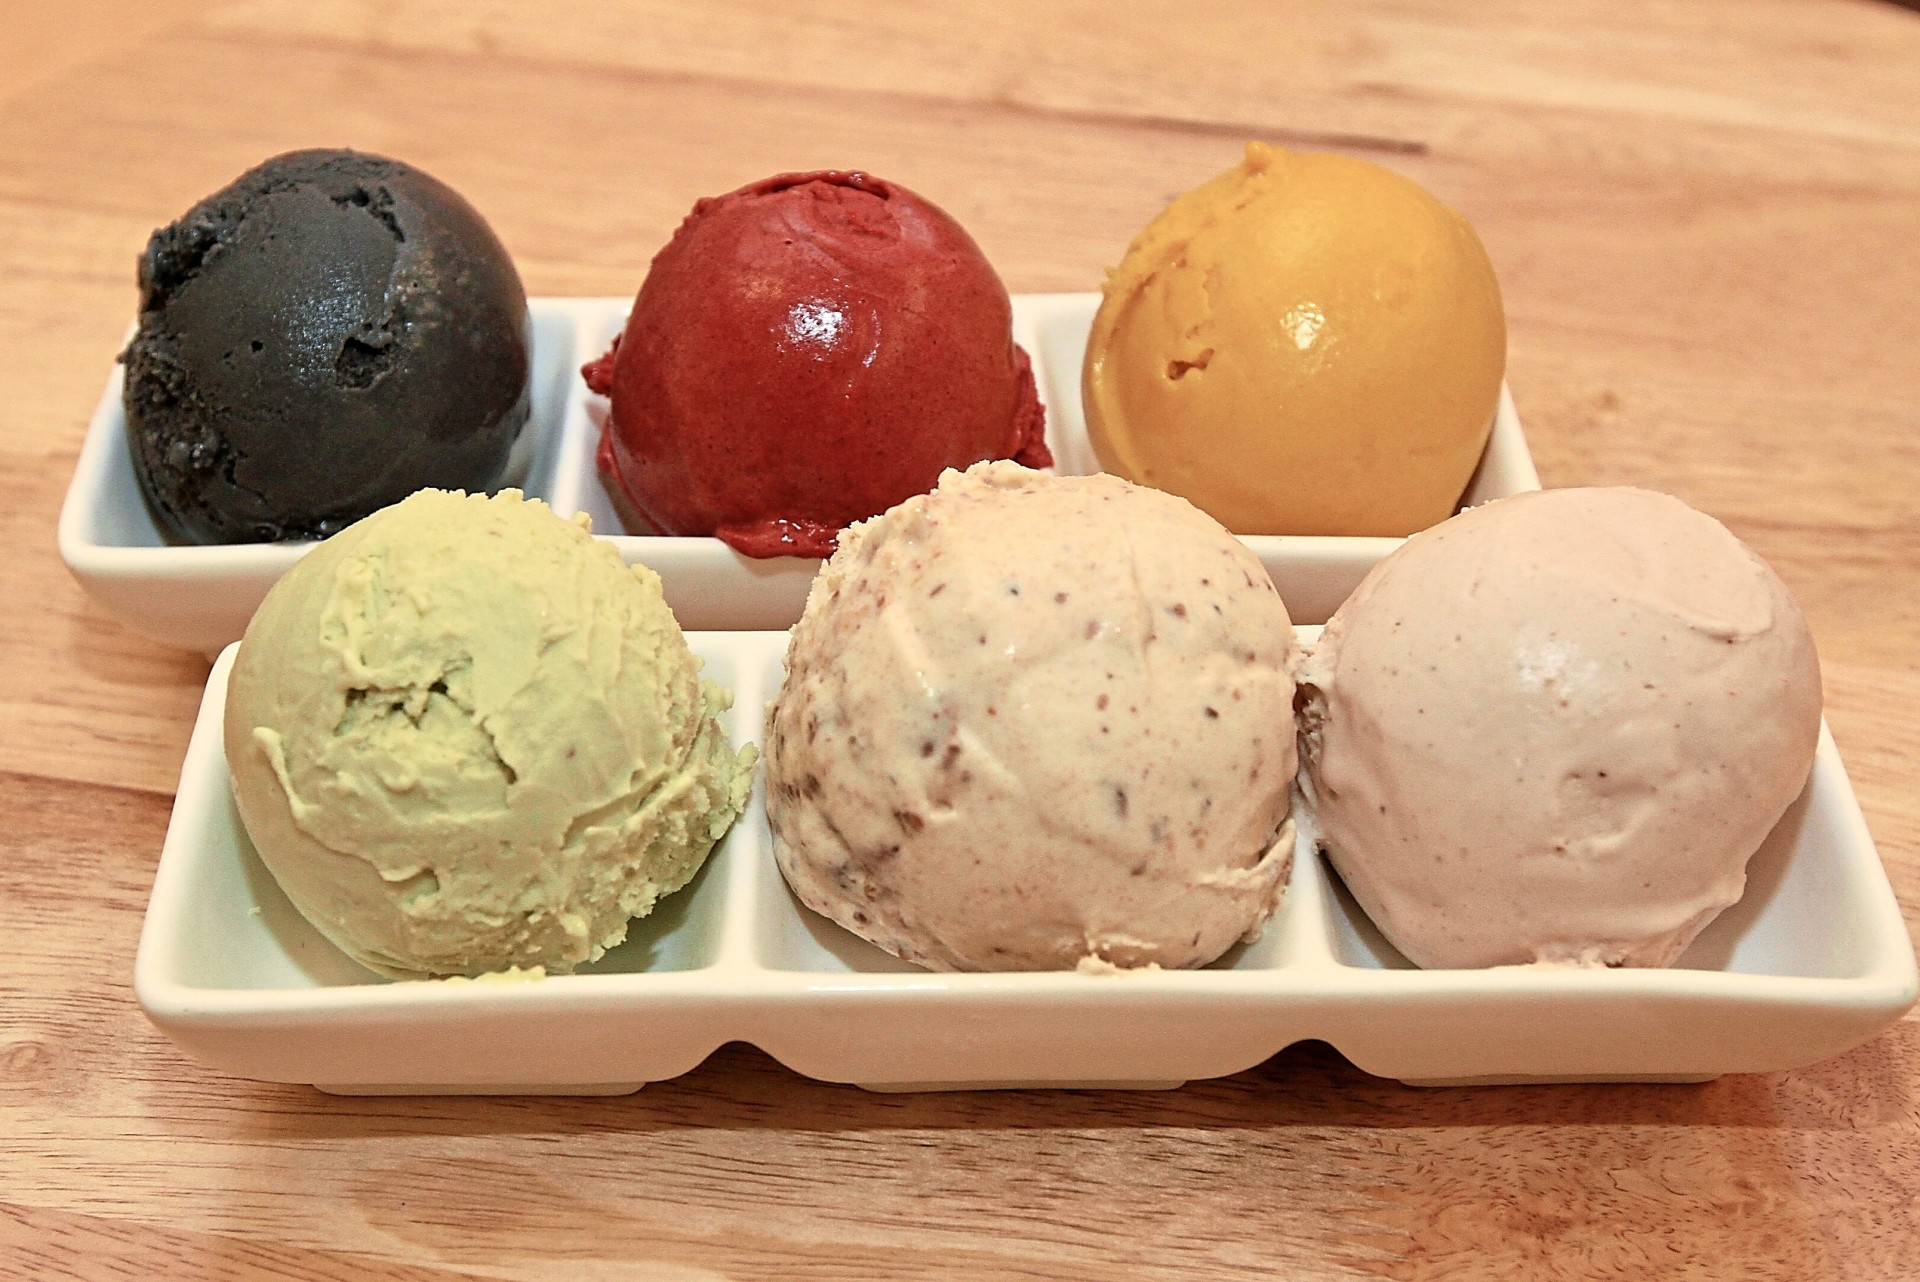 All the ice-creams at Sweet Escape have 25% less sugar than traditional ice-creams. Clockwise from top left: coconut ash, mixed berry sorbet, mango sorbet, strawberry basil, sticky date and pistachio.